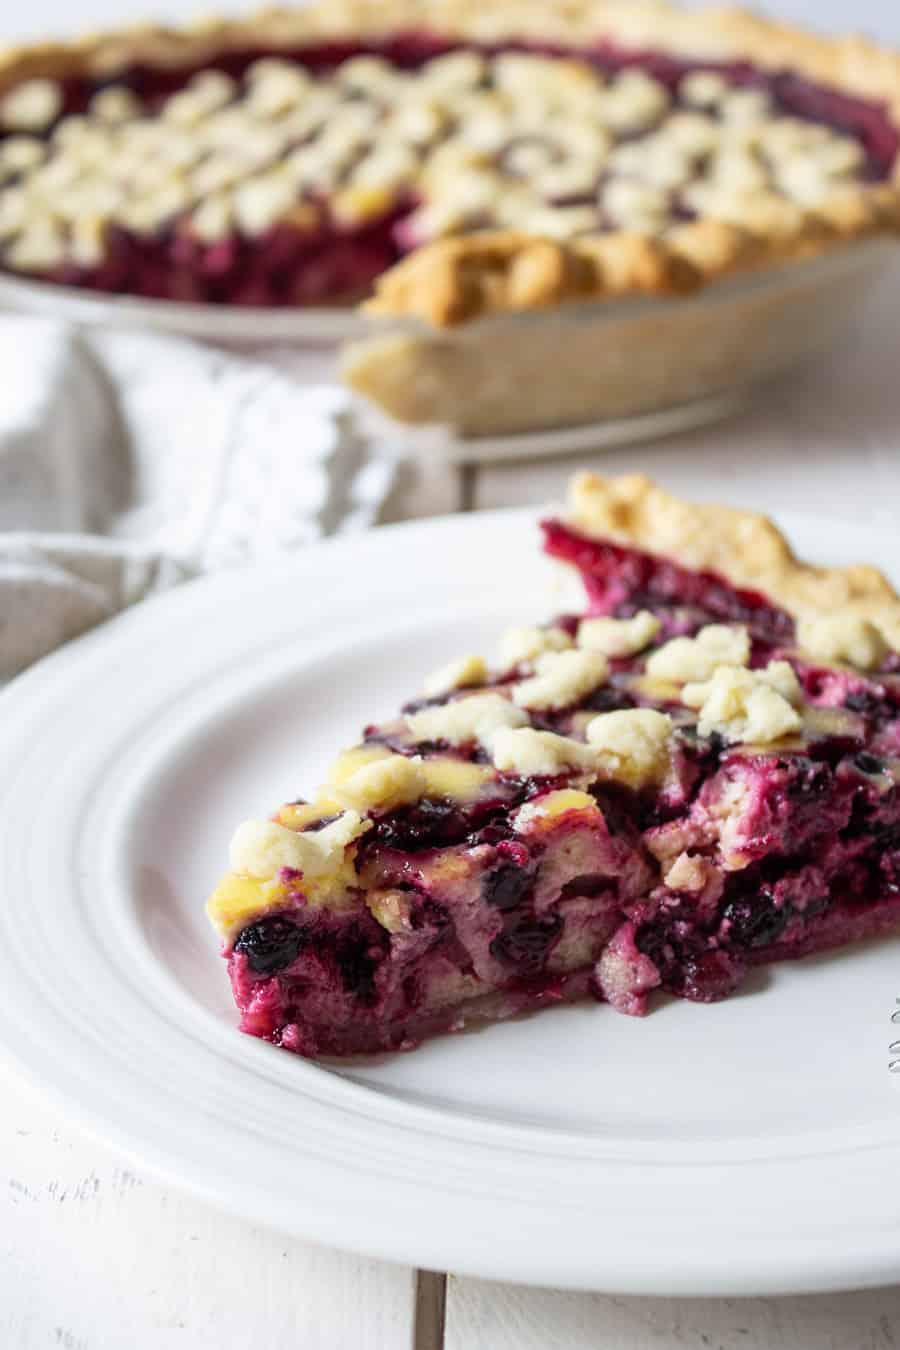 Slice of berry pie on a white plate with the whole pie behind the slice of pie.